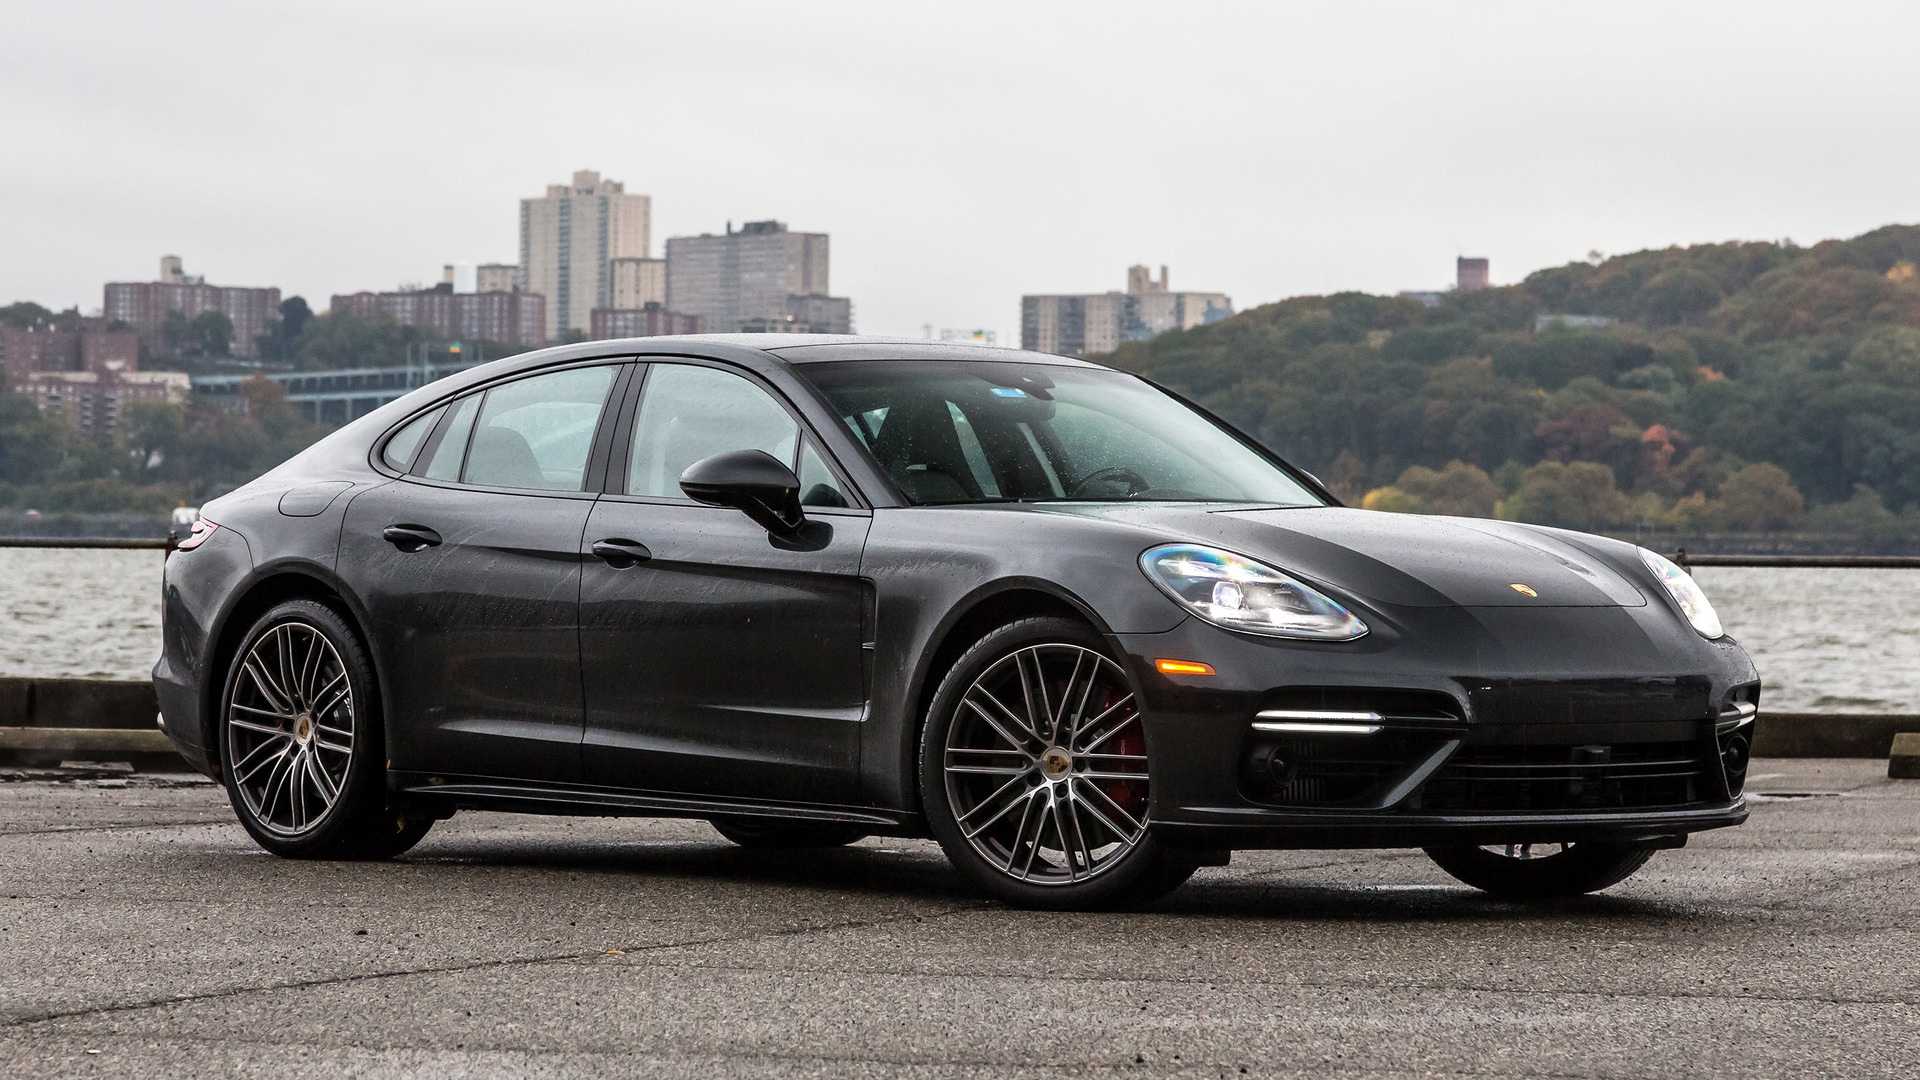 All Car Wallpapers Hd 2017 Porsche Panamera Turbo First Drive When Luxury Four